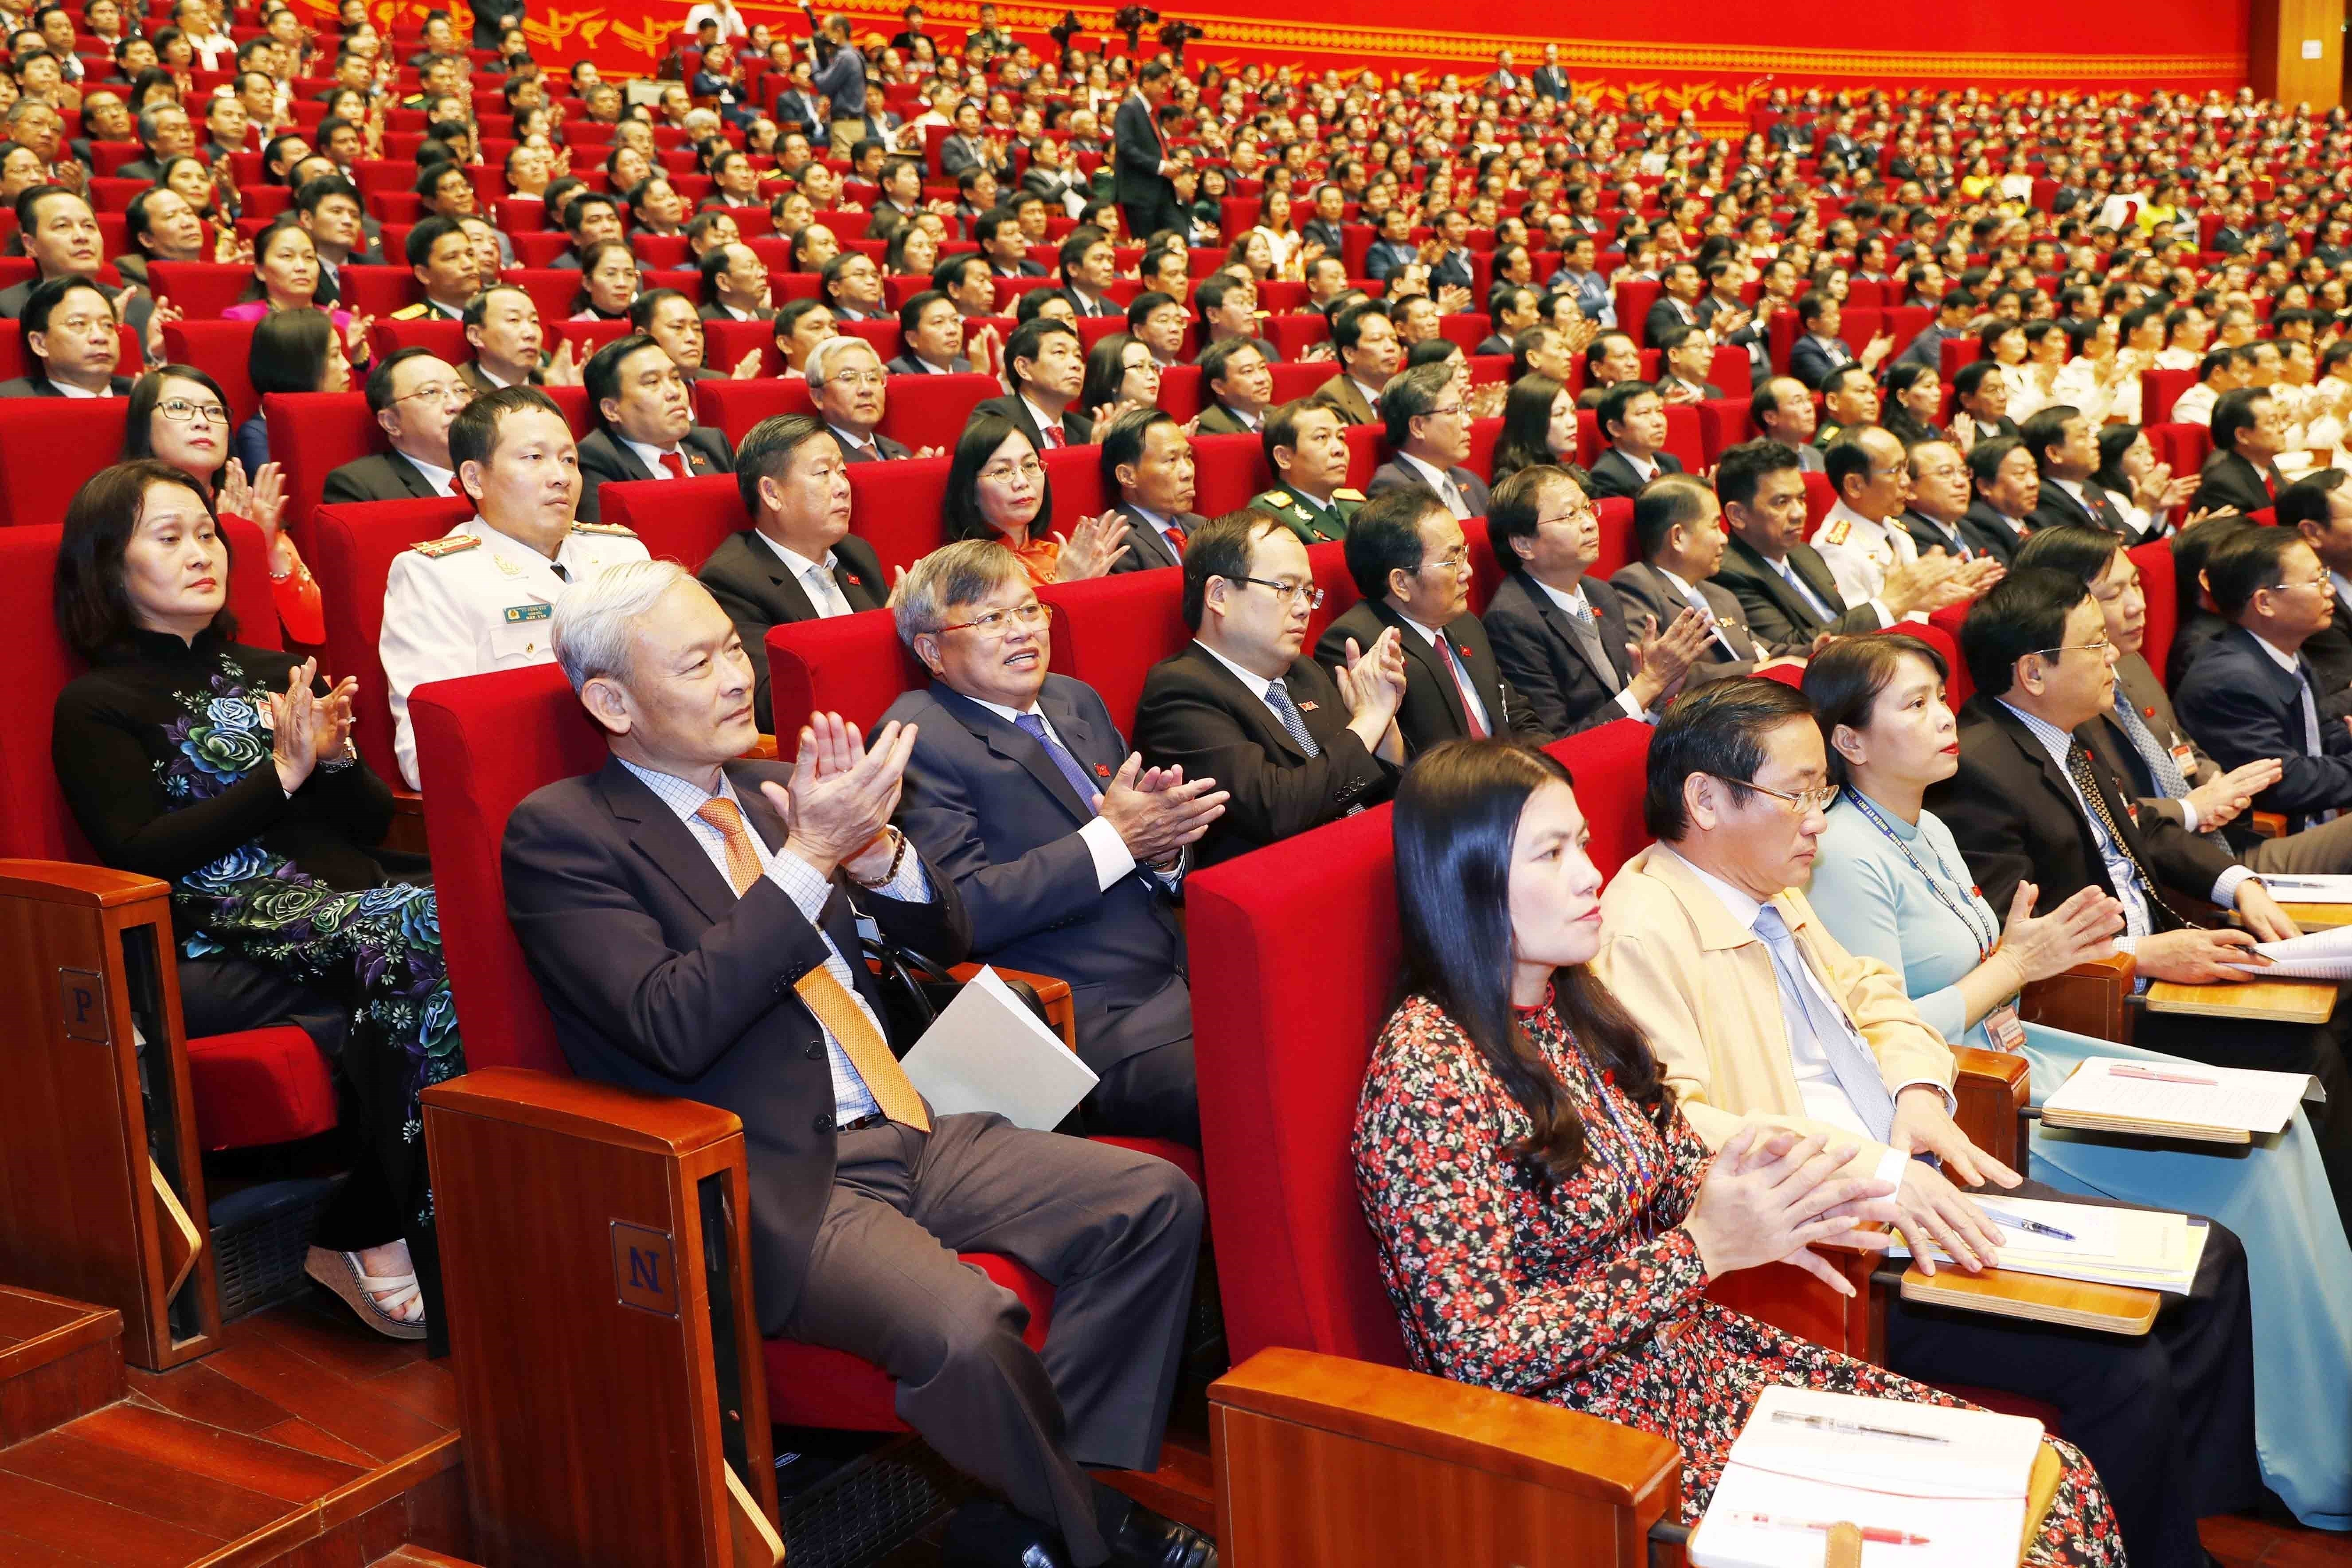 Delegates present discourses on congress's third working day hinh anh 3